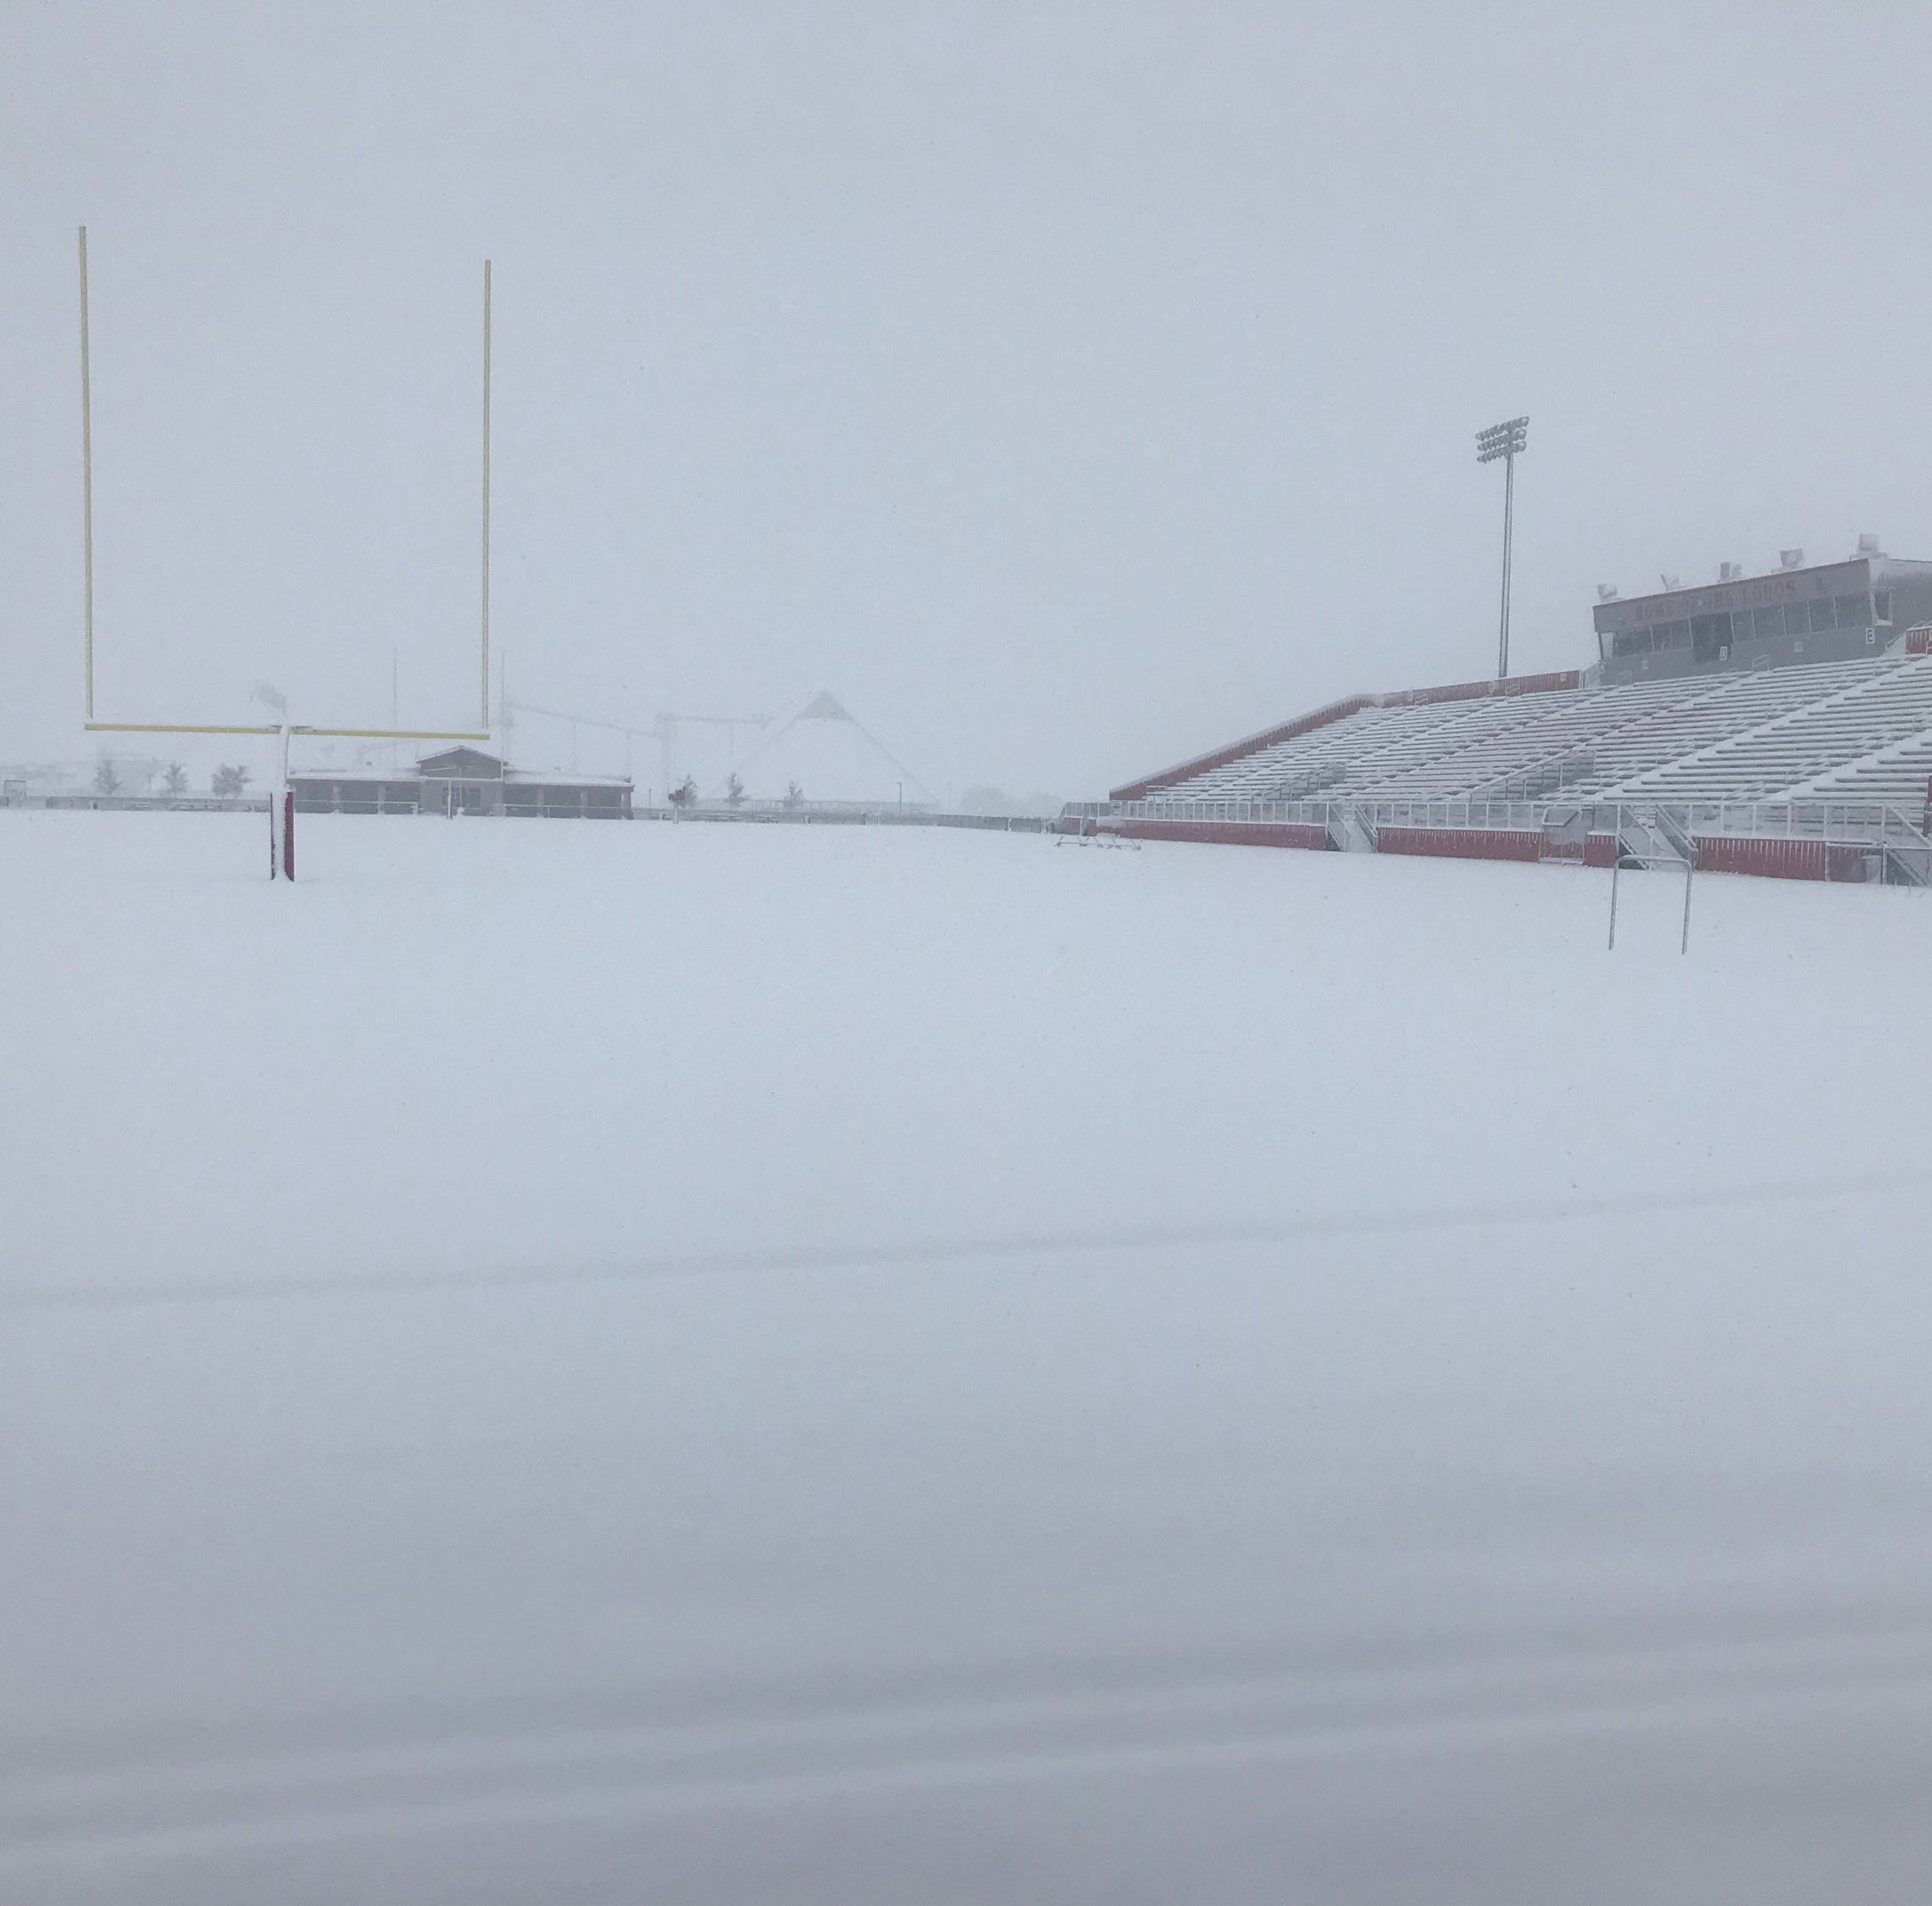 Garden City state semifinal game postponed to Monday due to snow